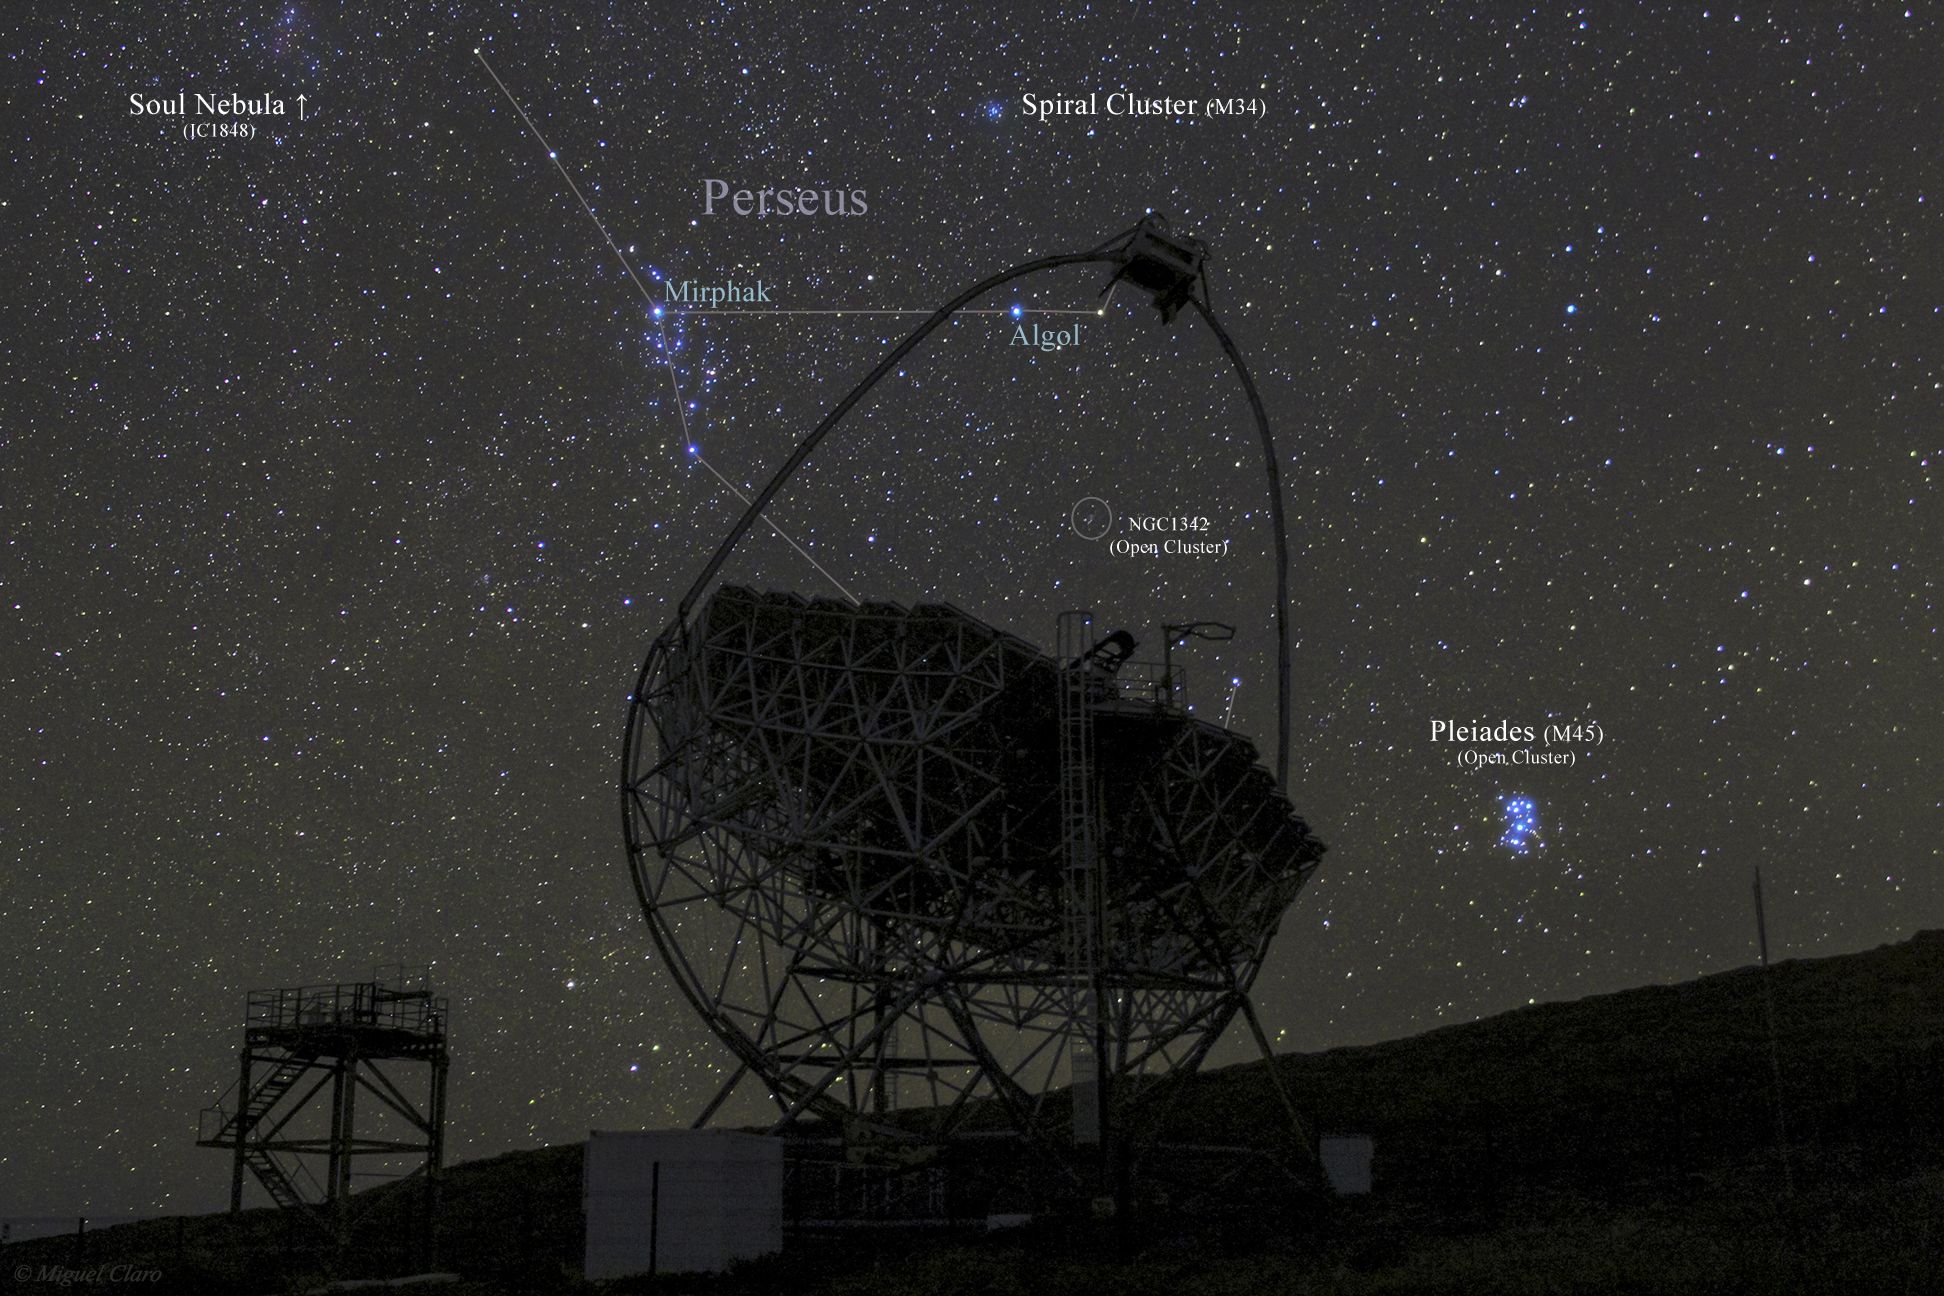 Pleiades Dazzles Over MAGIC Telescope (Annotated) by Miguel Claro